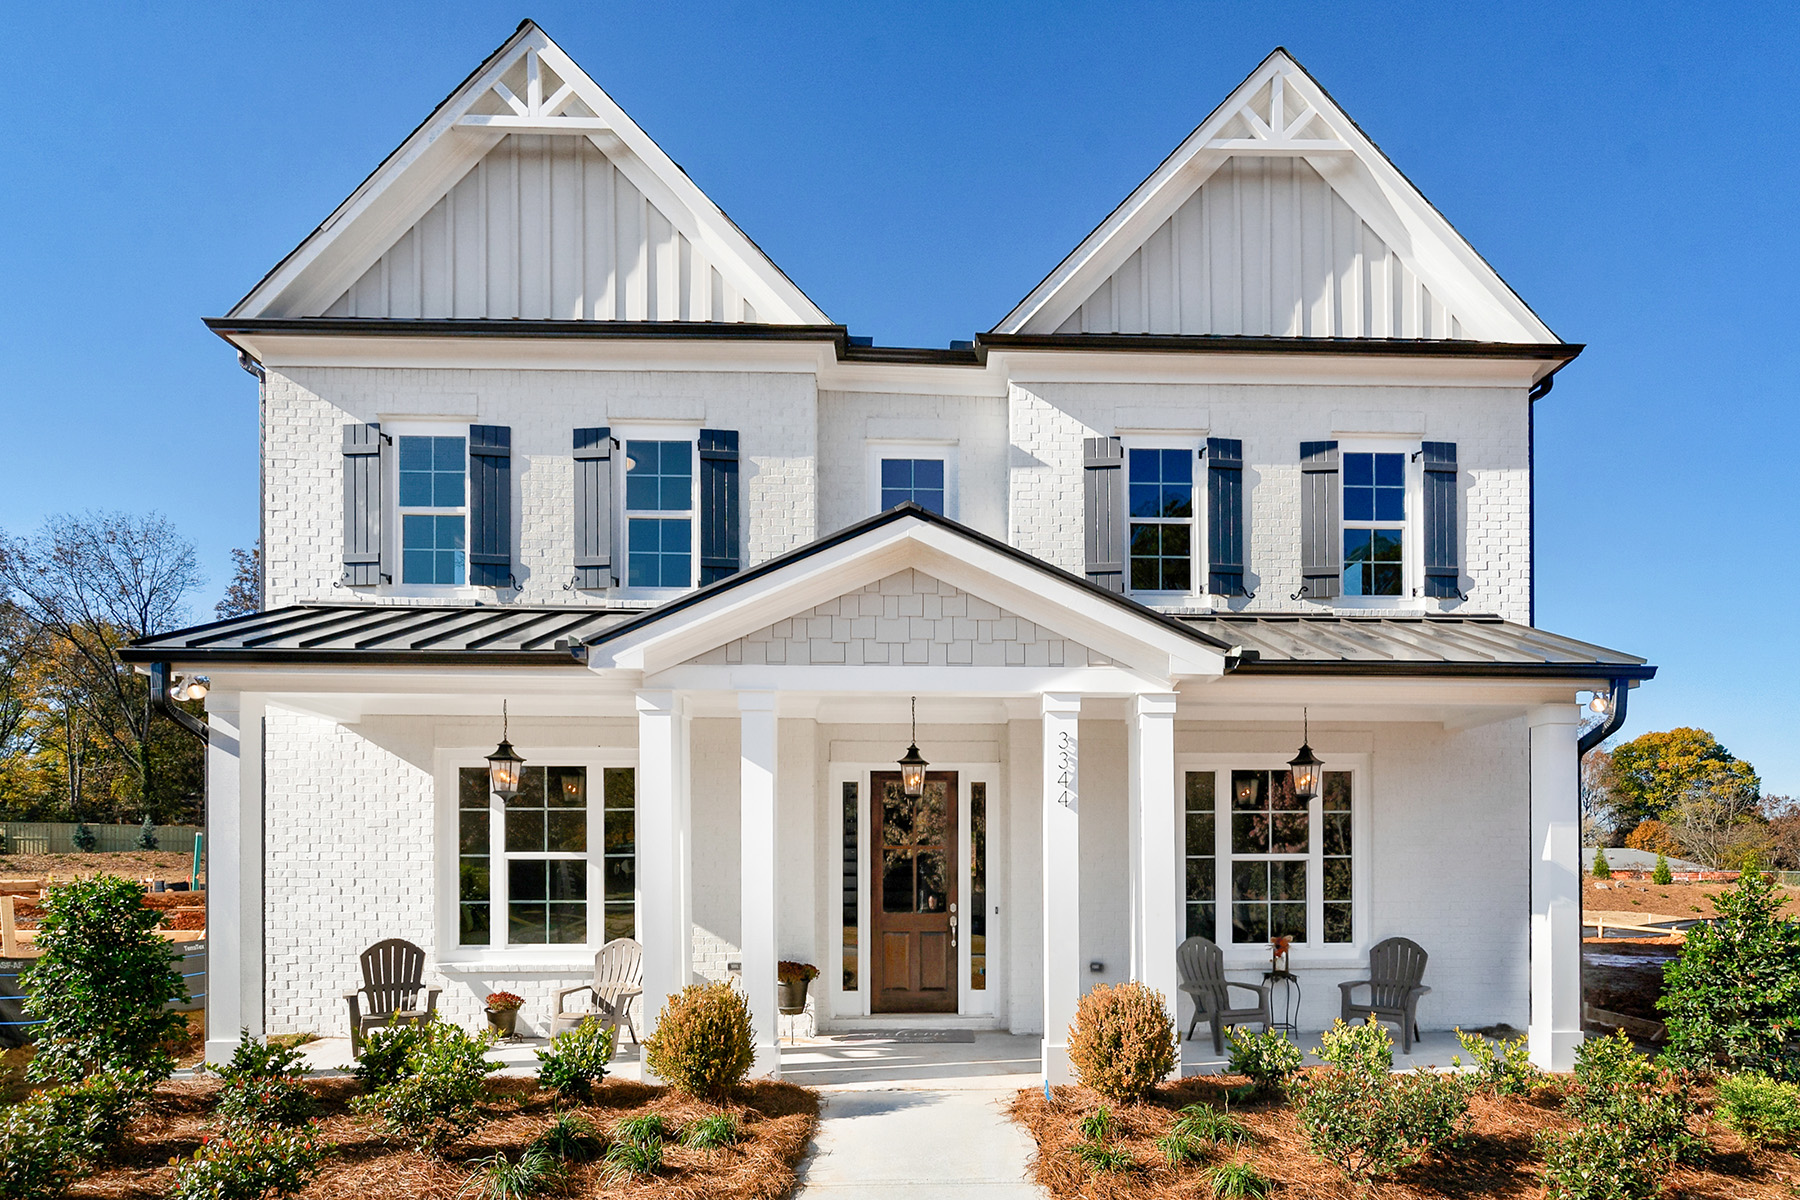 Single Family Homes for Active at New Construction Community in Smyrna with Master on Main 3344 Old Concord Road Smyrna, Georgia 30082 United States